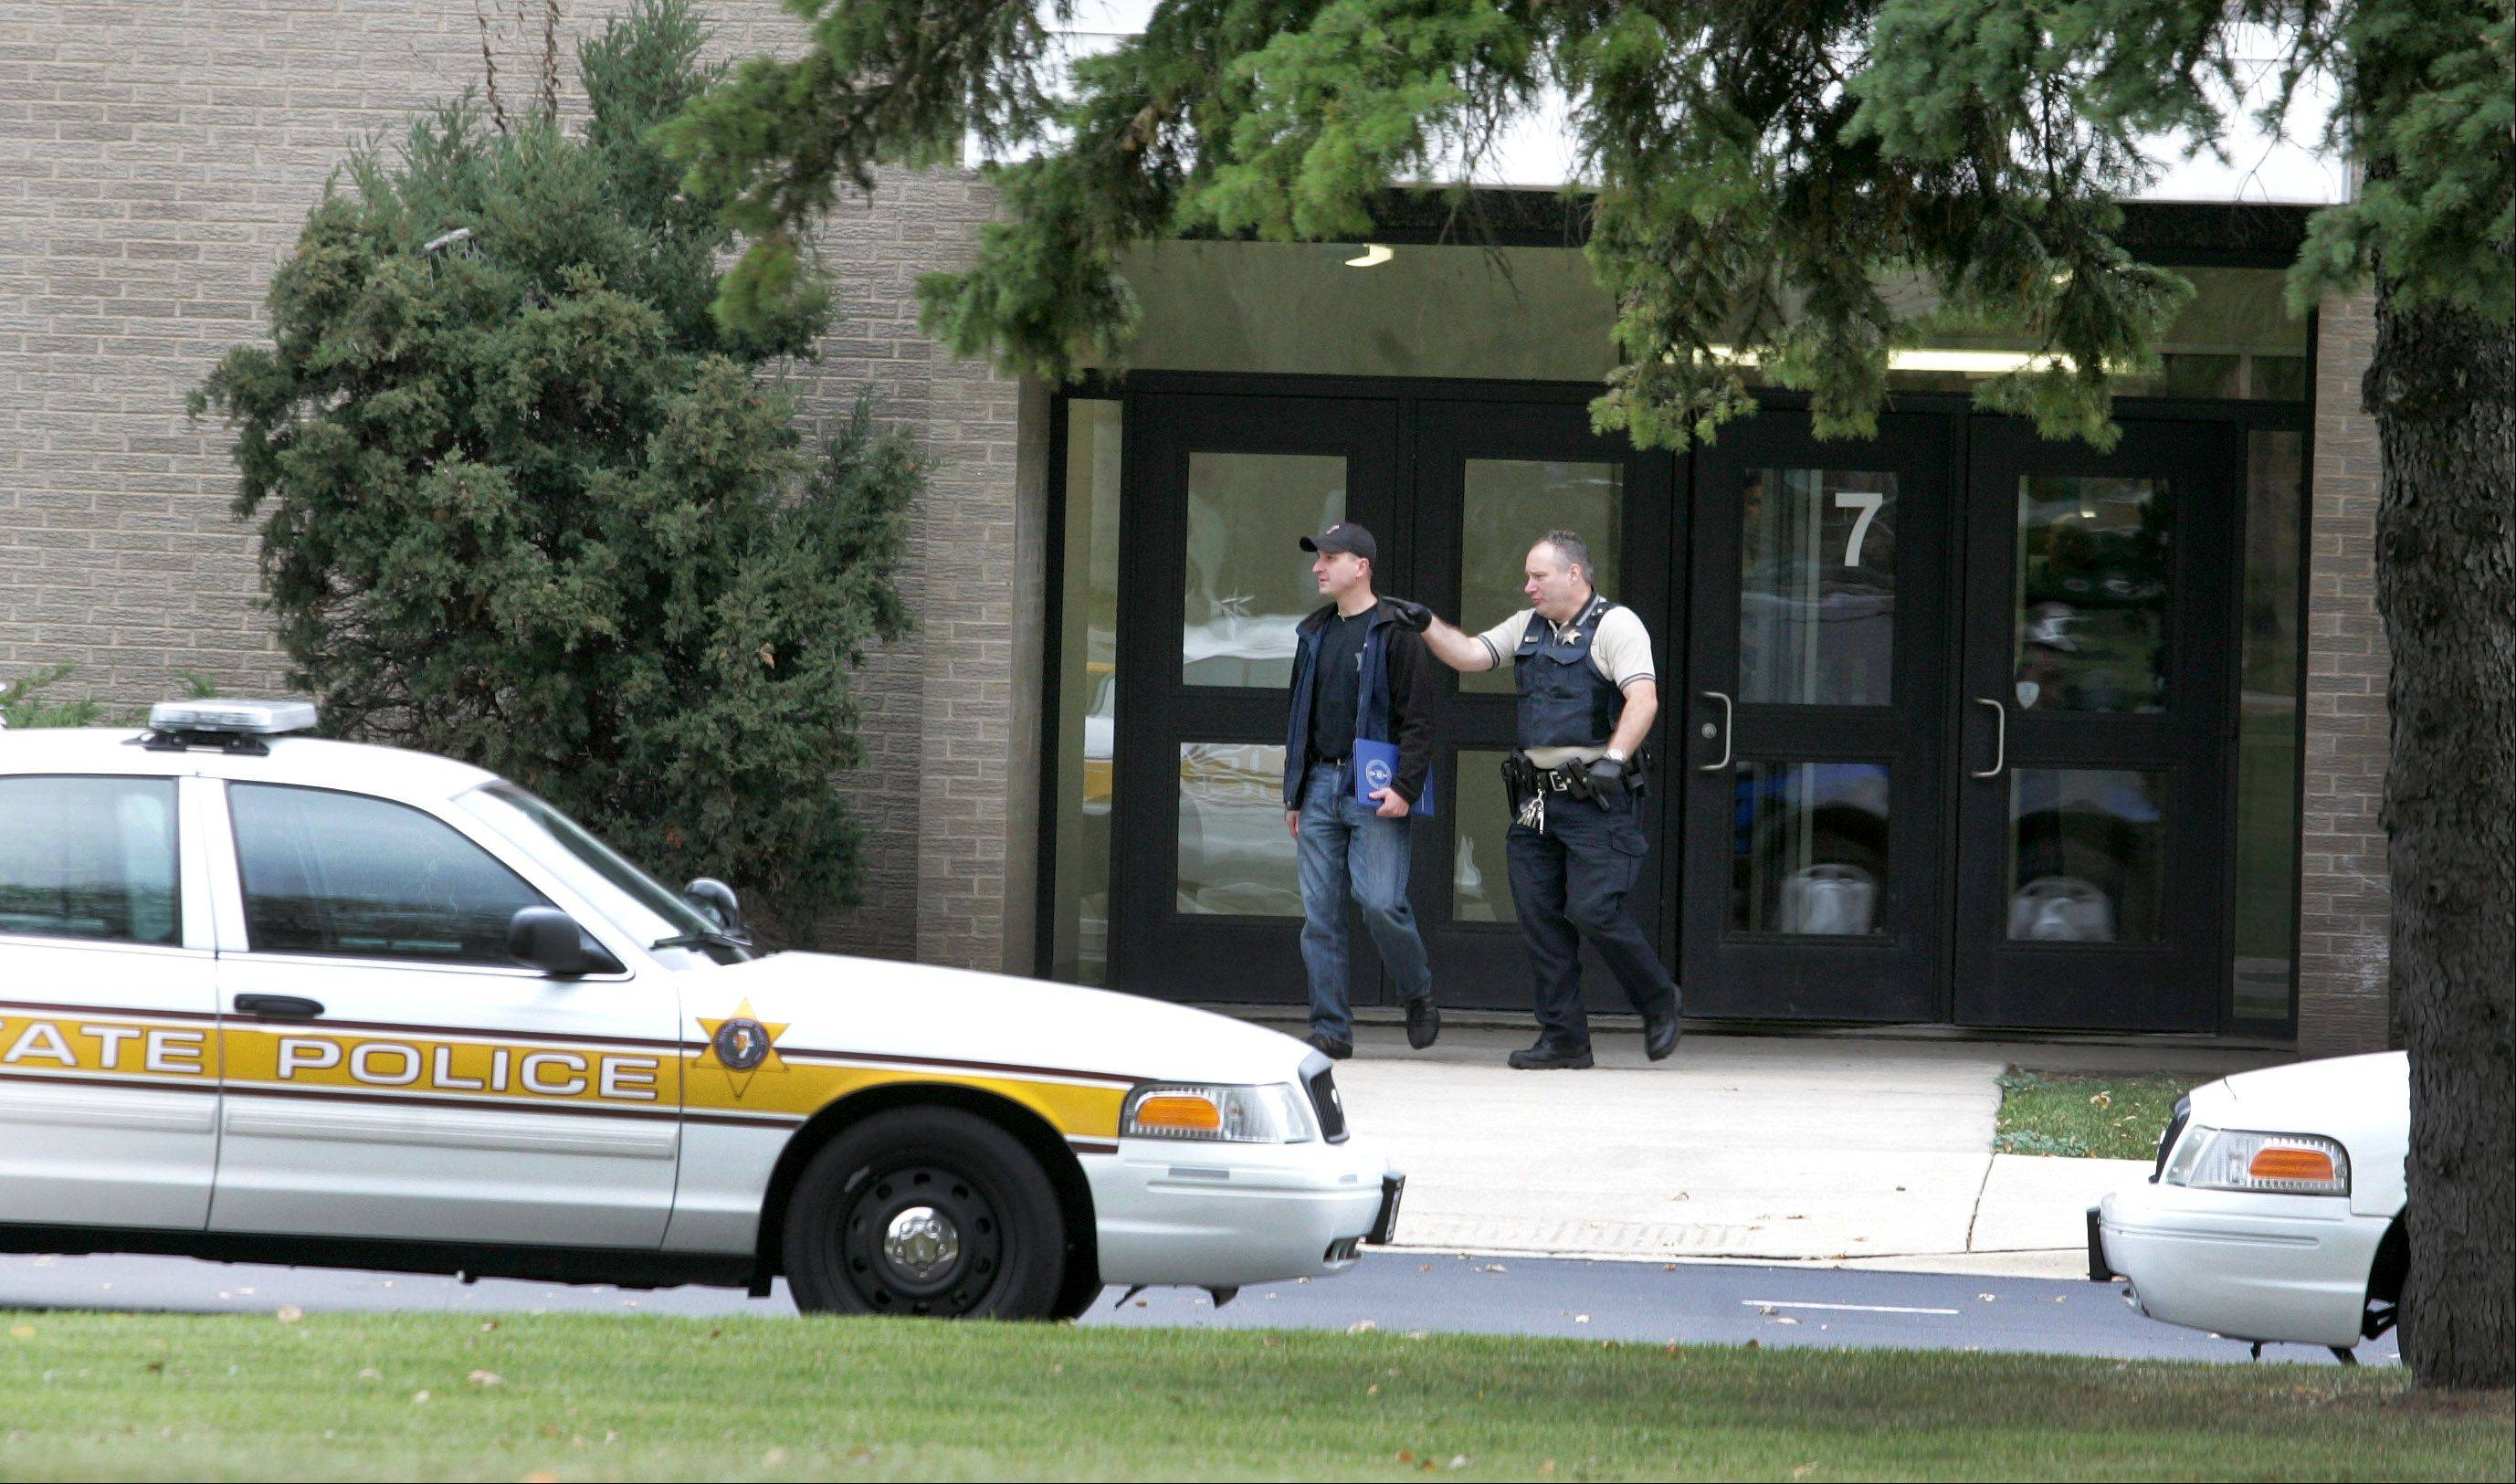 Police exit Indian Trail Junior High School in Addison while investigating what proved to be a false report Friday that a student was restrained in the restroom by an intruder. The student fabricated the story, police said.